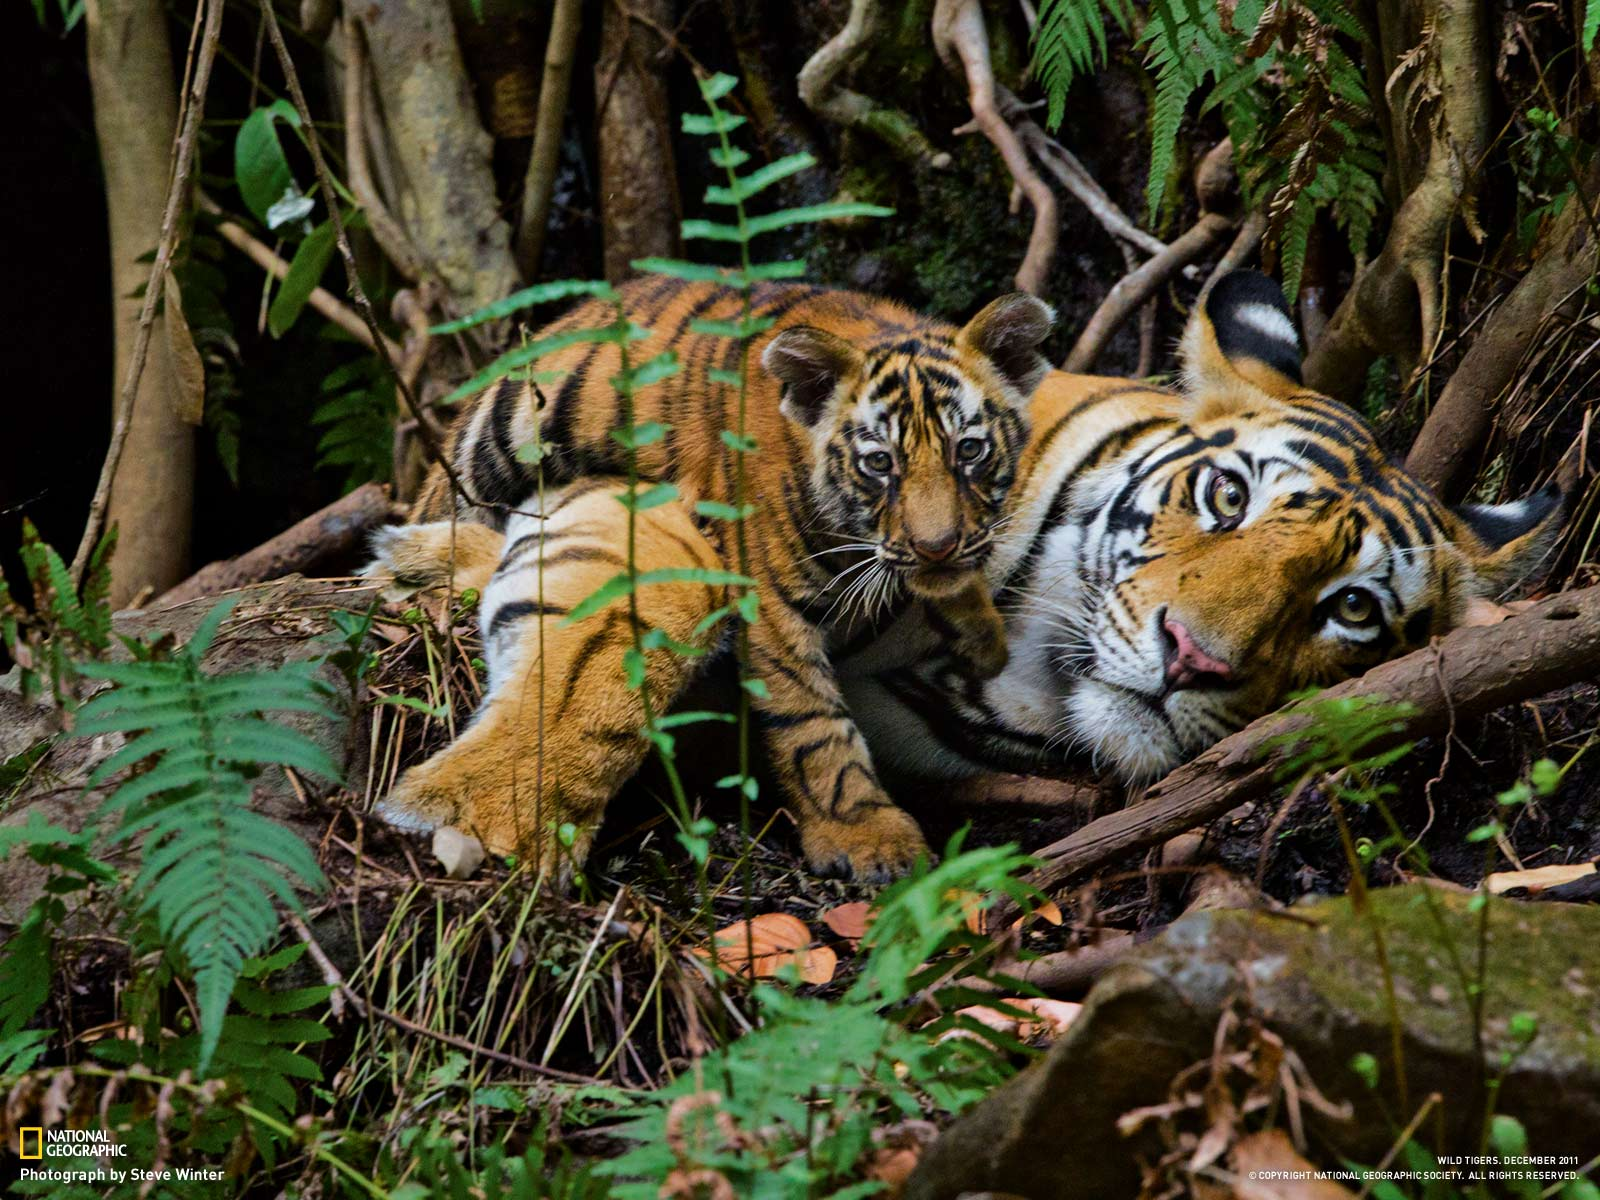 Nat geo wild hd wallpaper full hd pictures - National geographic wild wallpapers ...